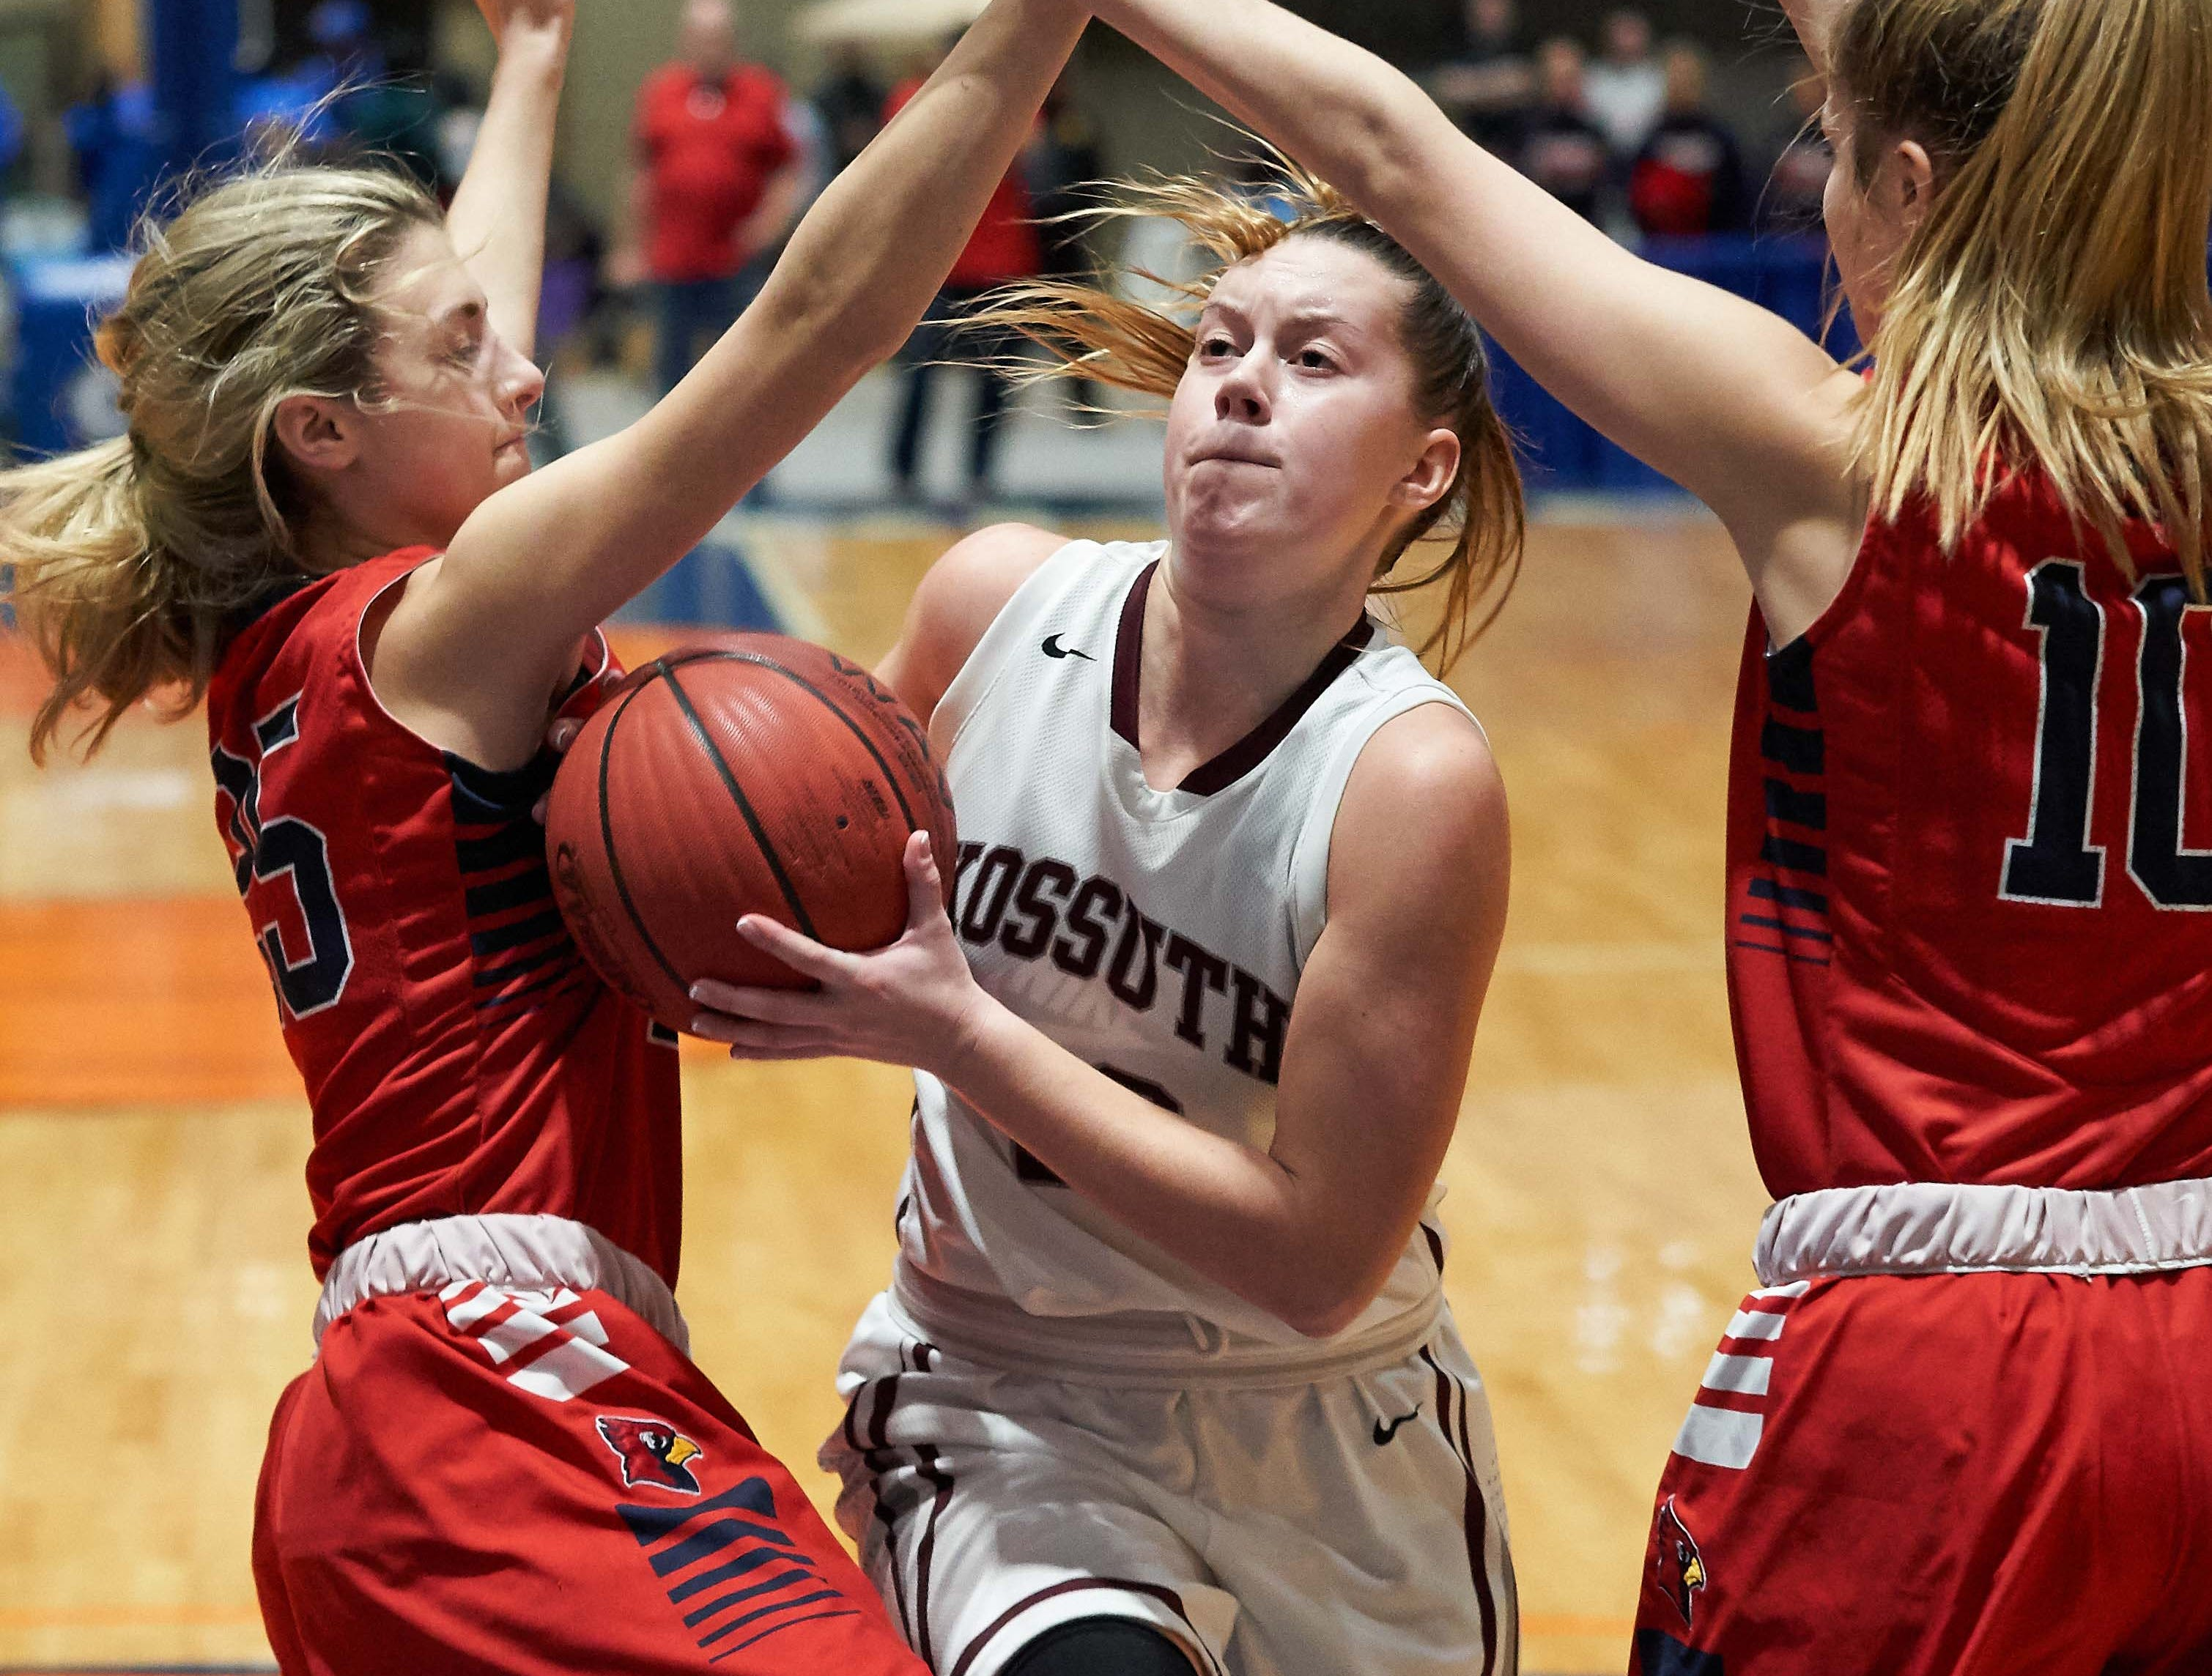 Kossuth's Morgan Hodum (22) drives against Belmont during the MHSAA 3A Girls Basketball Championship Finals held at the Mississippi Coliseum in Jackson, MS, Saturday March 9th, 2019.(Bob Smith)